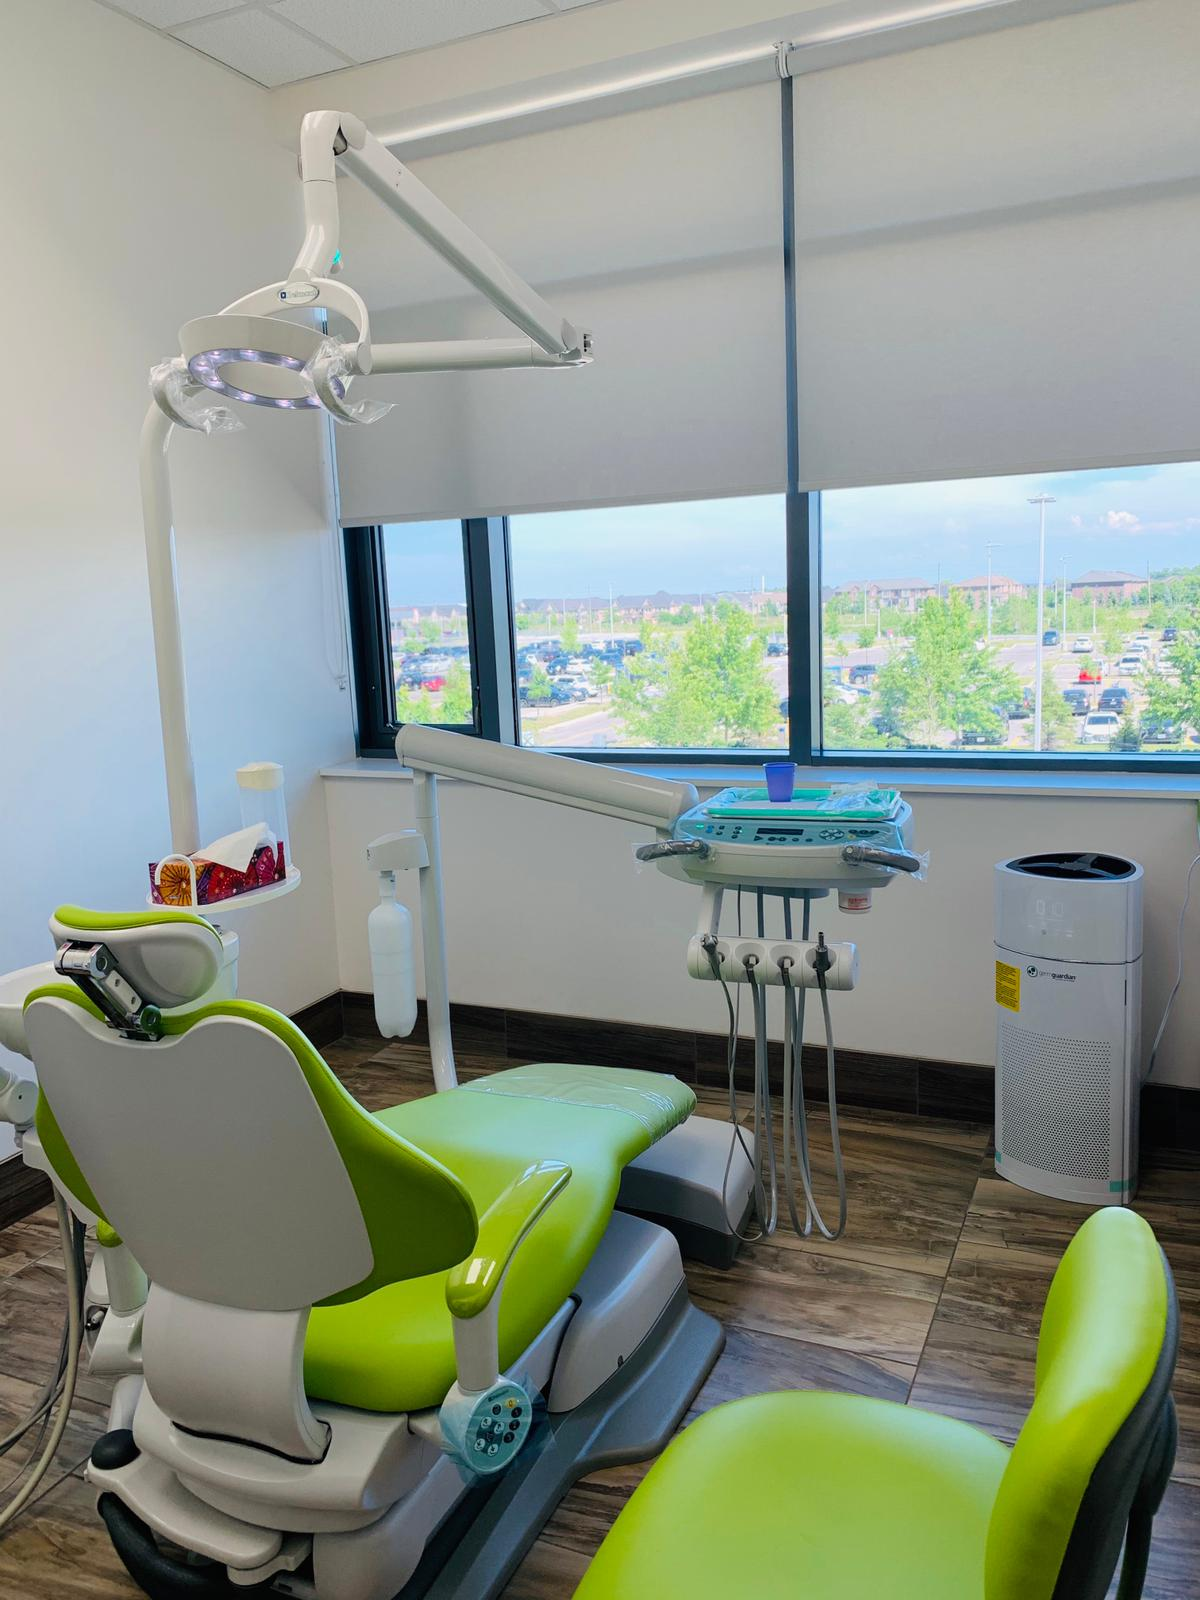 White Lily Dental